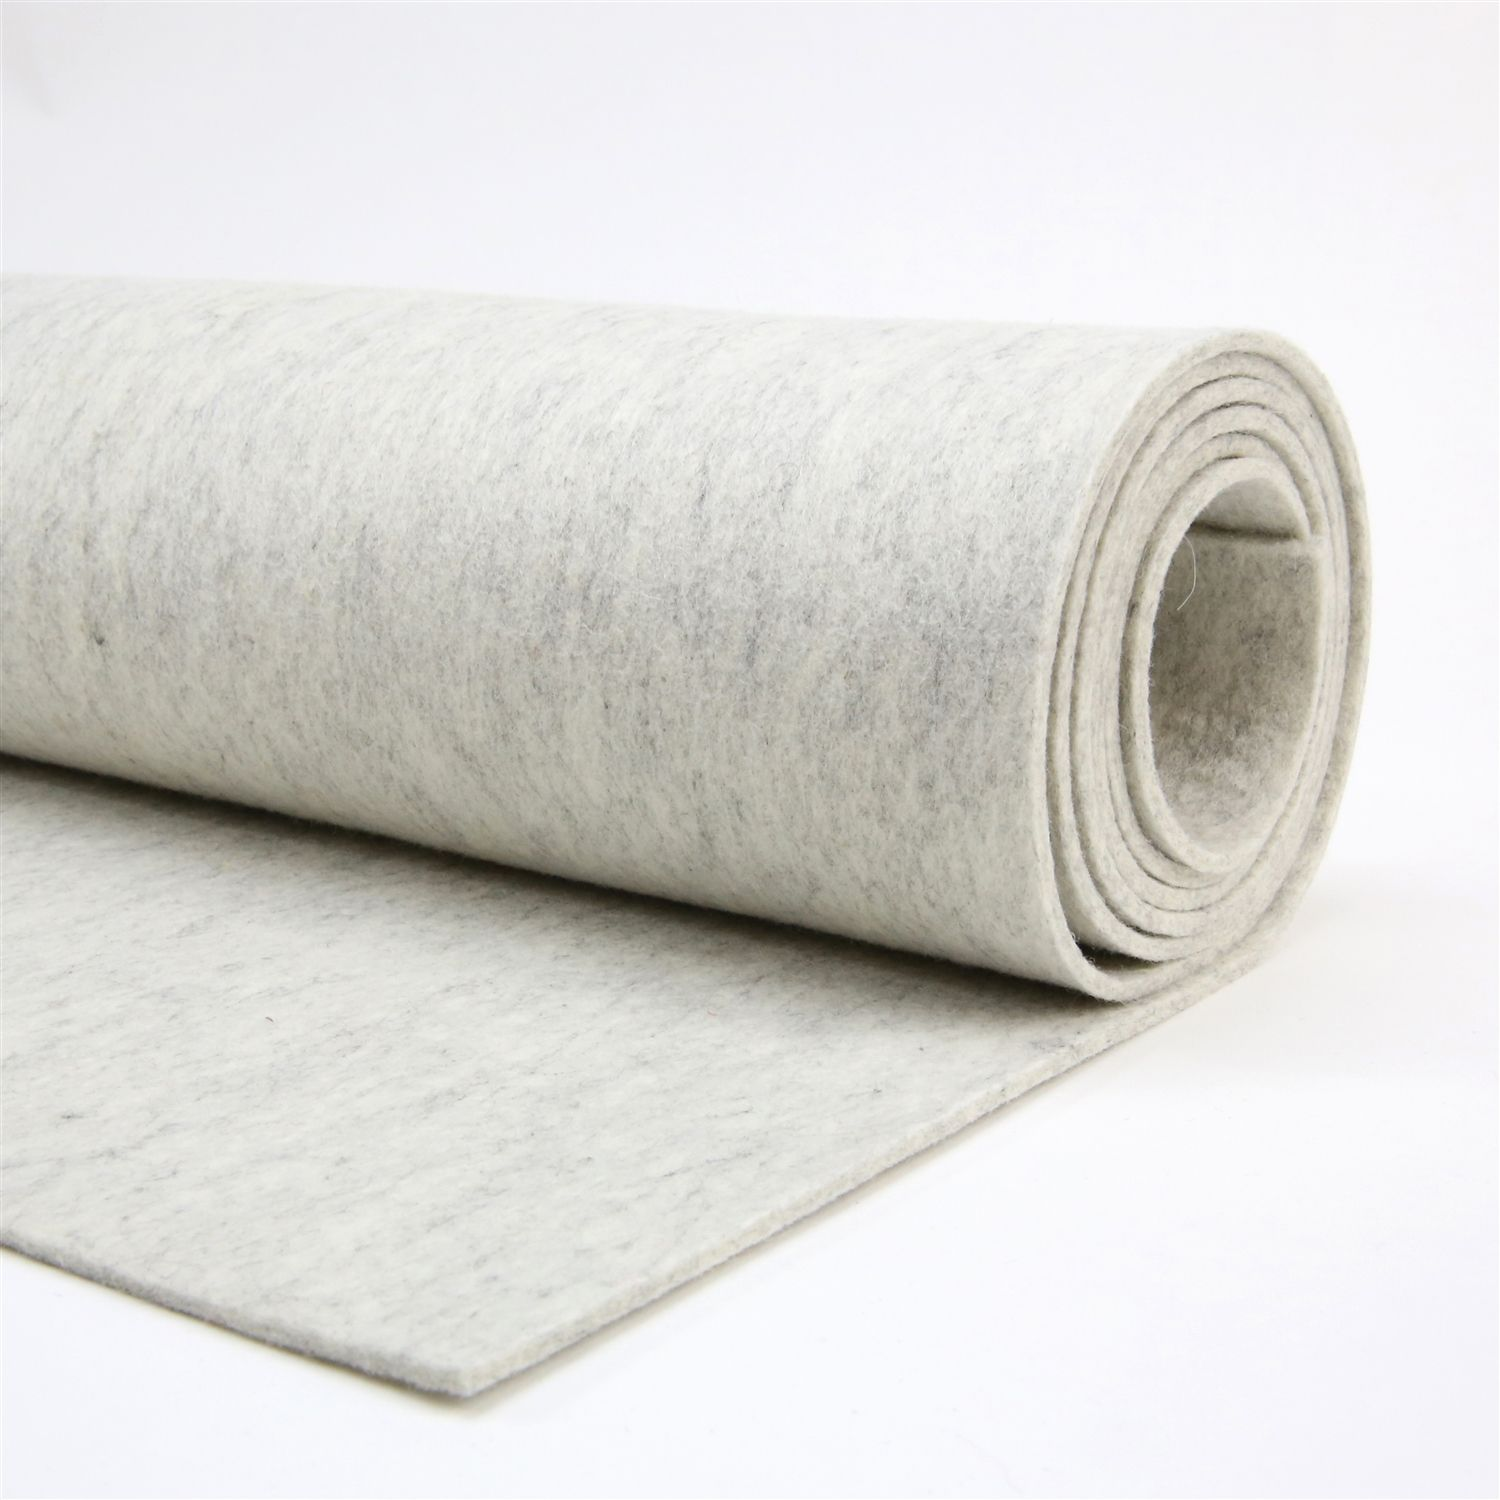 Heather White Felt Beige Wool Felt Wool Felt Fabric Wool Felt Felt Fabric